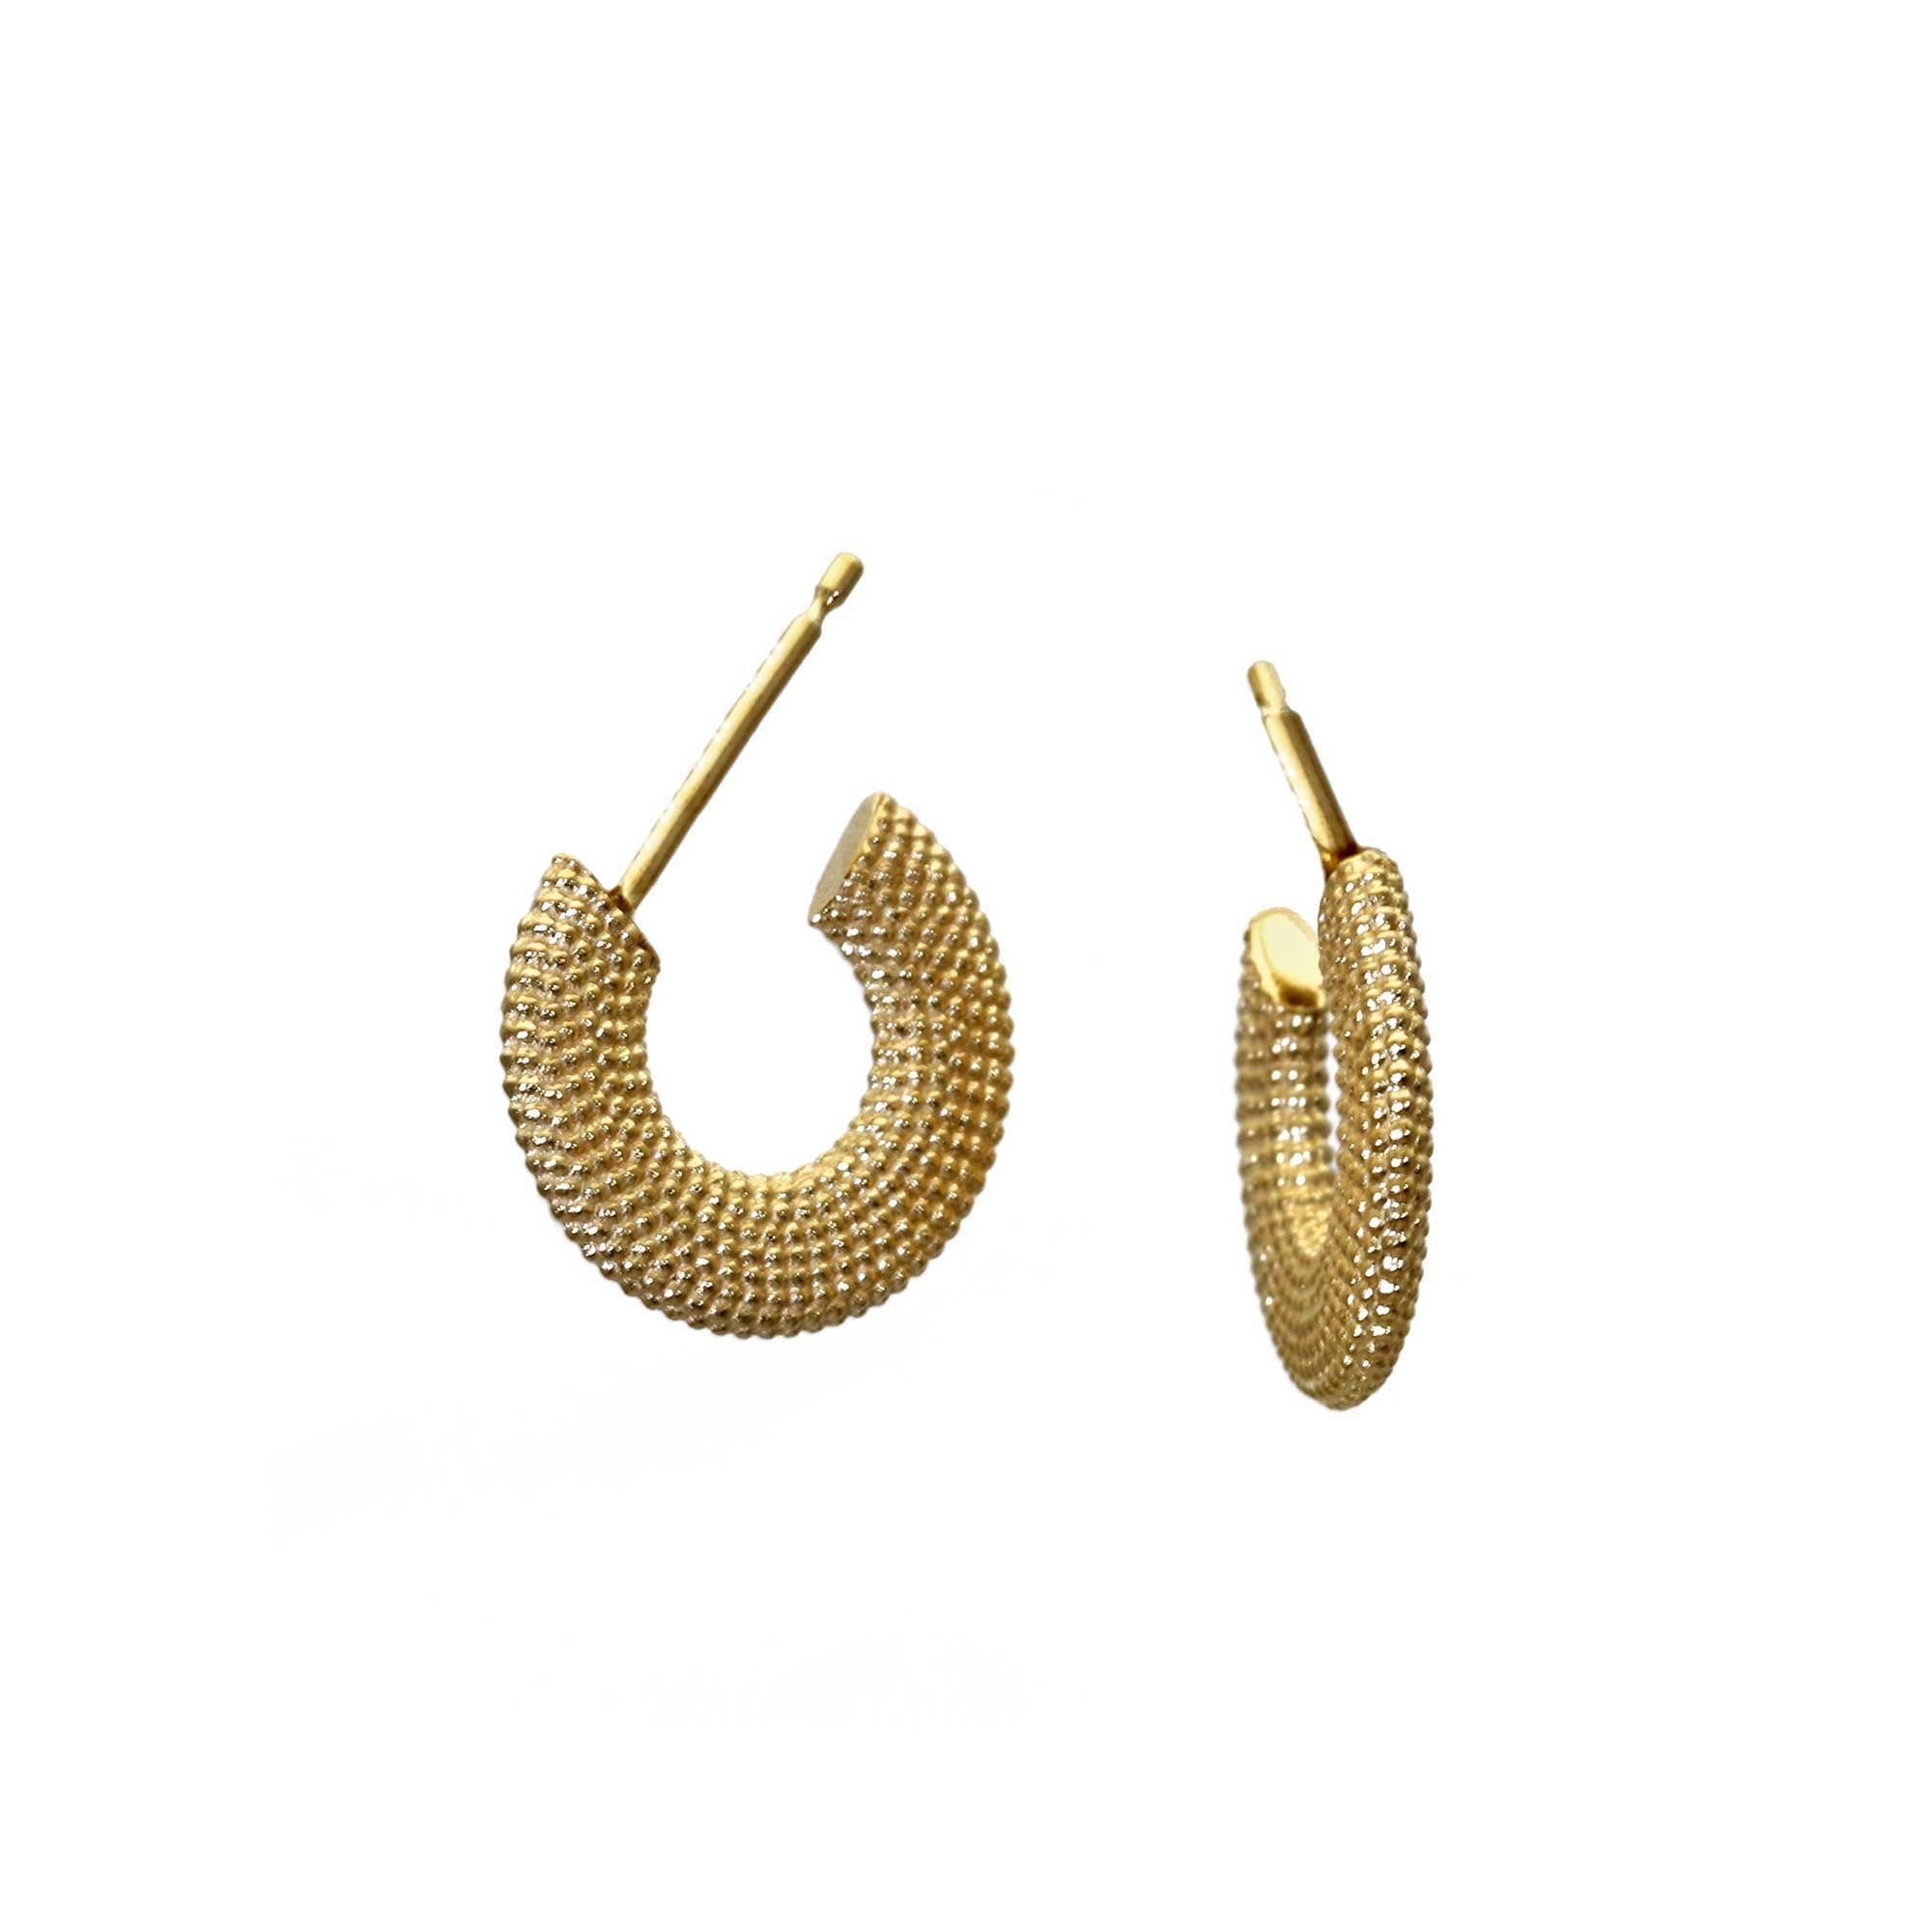 Weol Yellow Gold Hoop Earrings